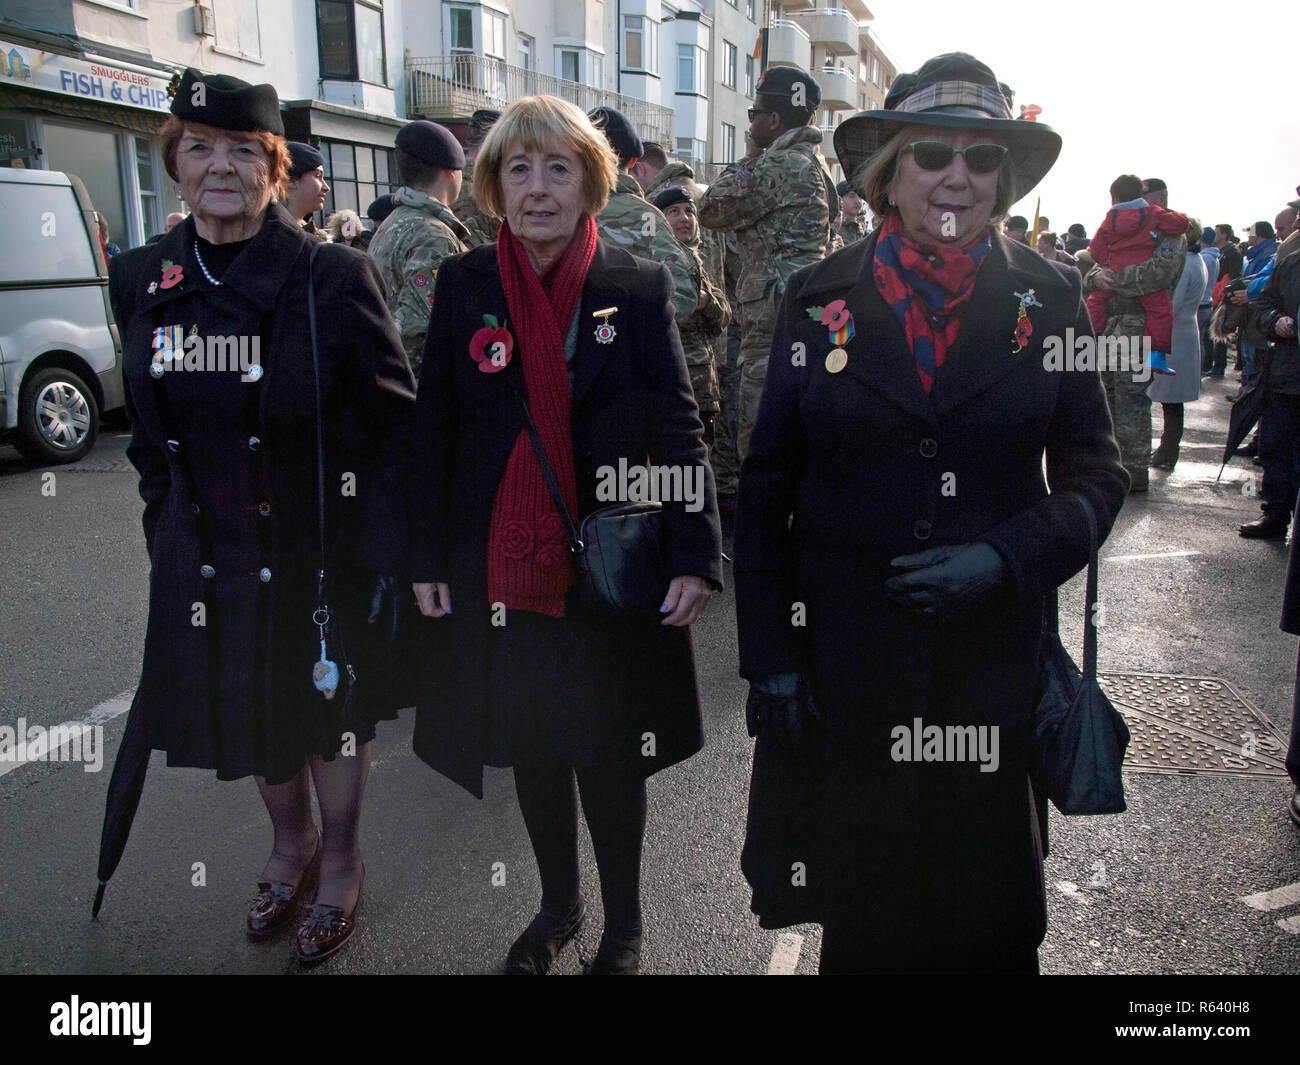 Participants in a Remembrance Day military parade assemble in Rottingdean - Stock Image